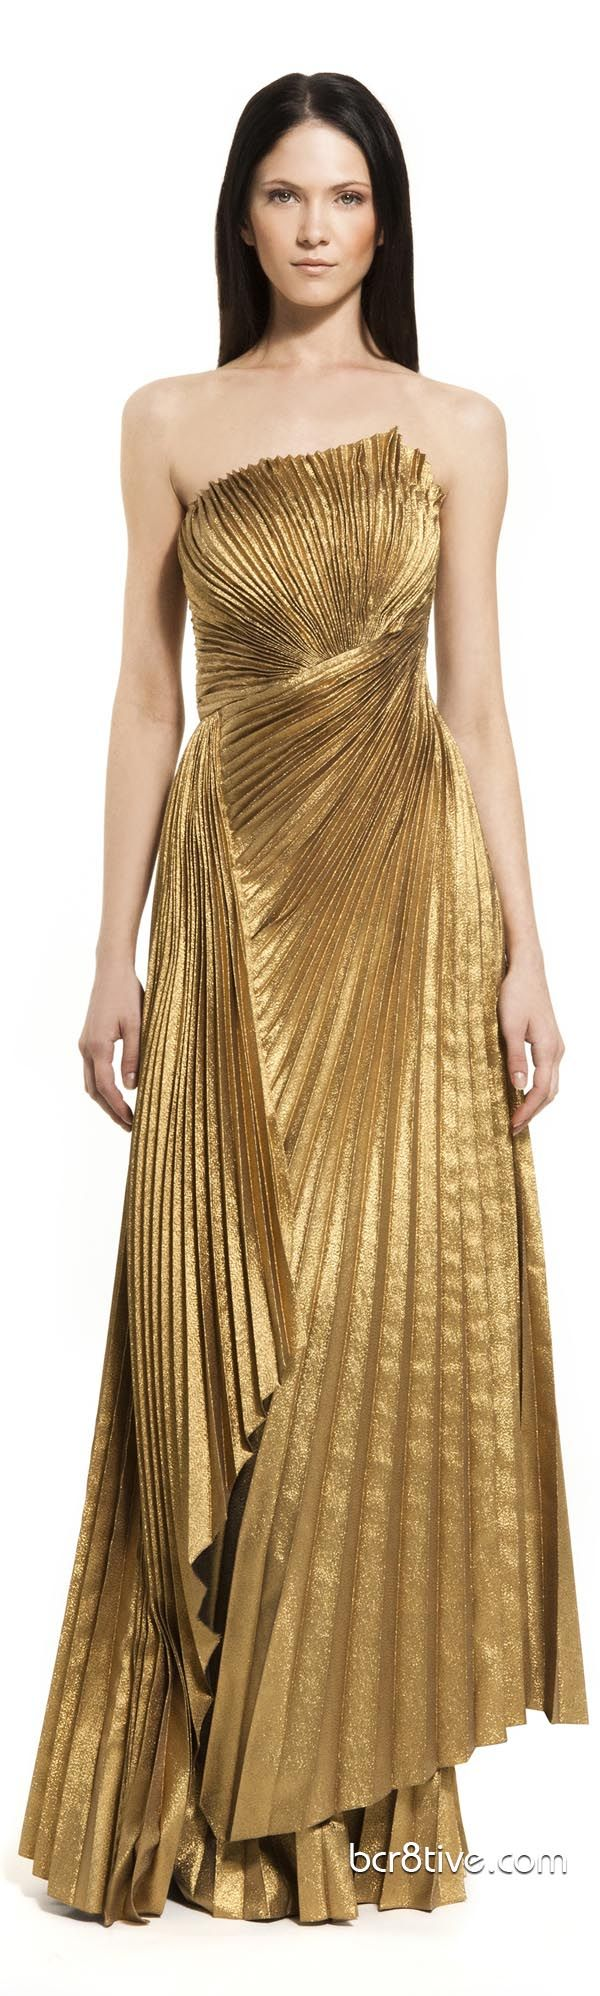 Carlos Miele PRE Spring Summer 2013 Ready To Wear Collection reminds me of Elizabeth Taylor's gold dress in Cleopatra